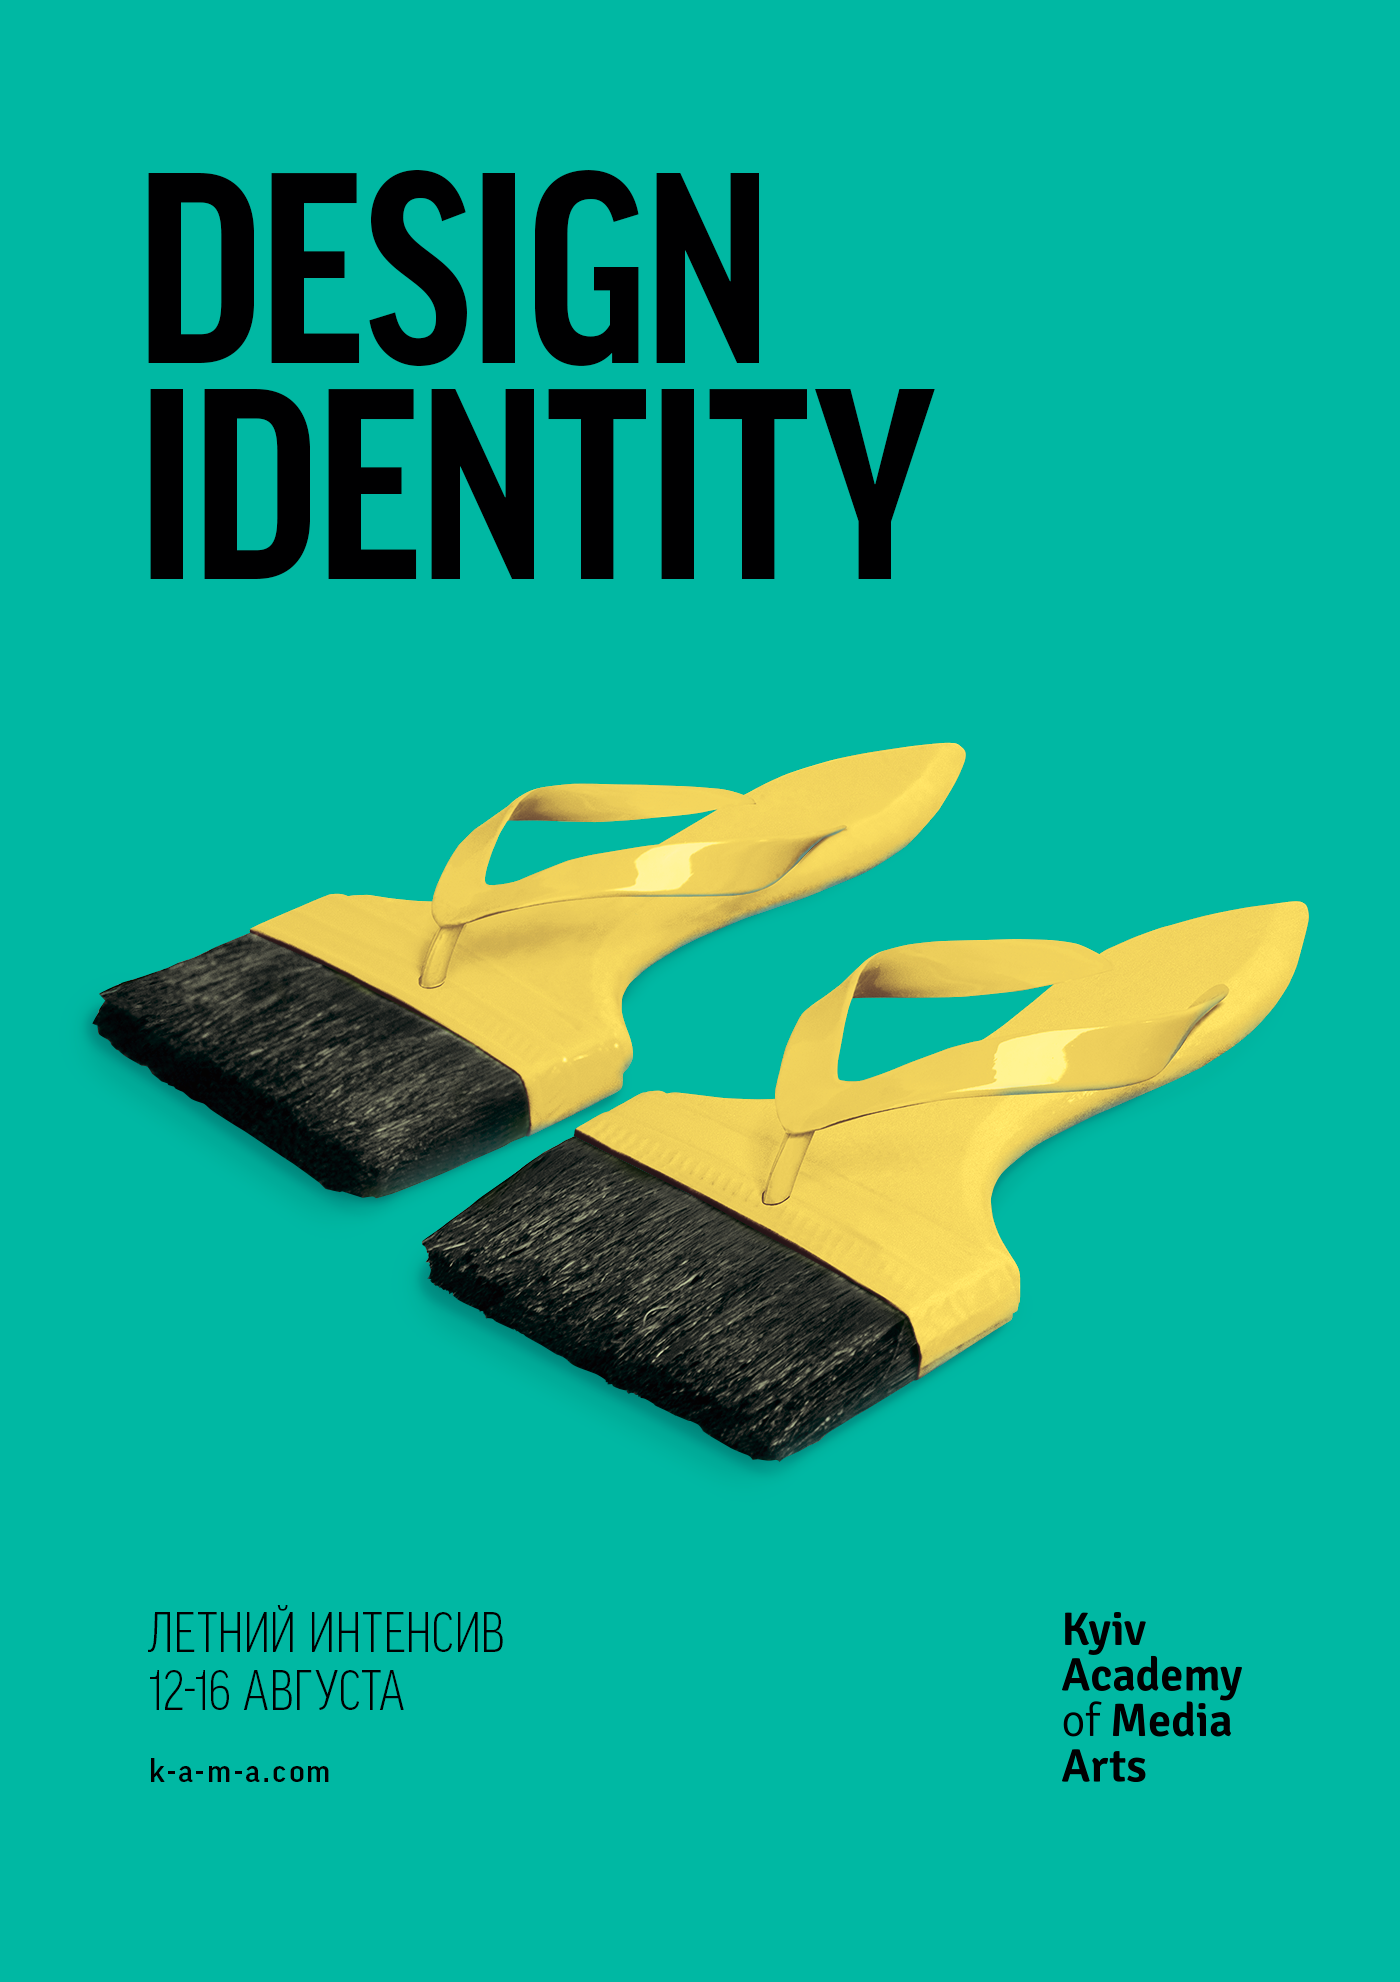 DESIGN-IDENTITY-WEB.png